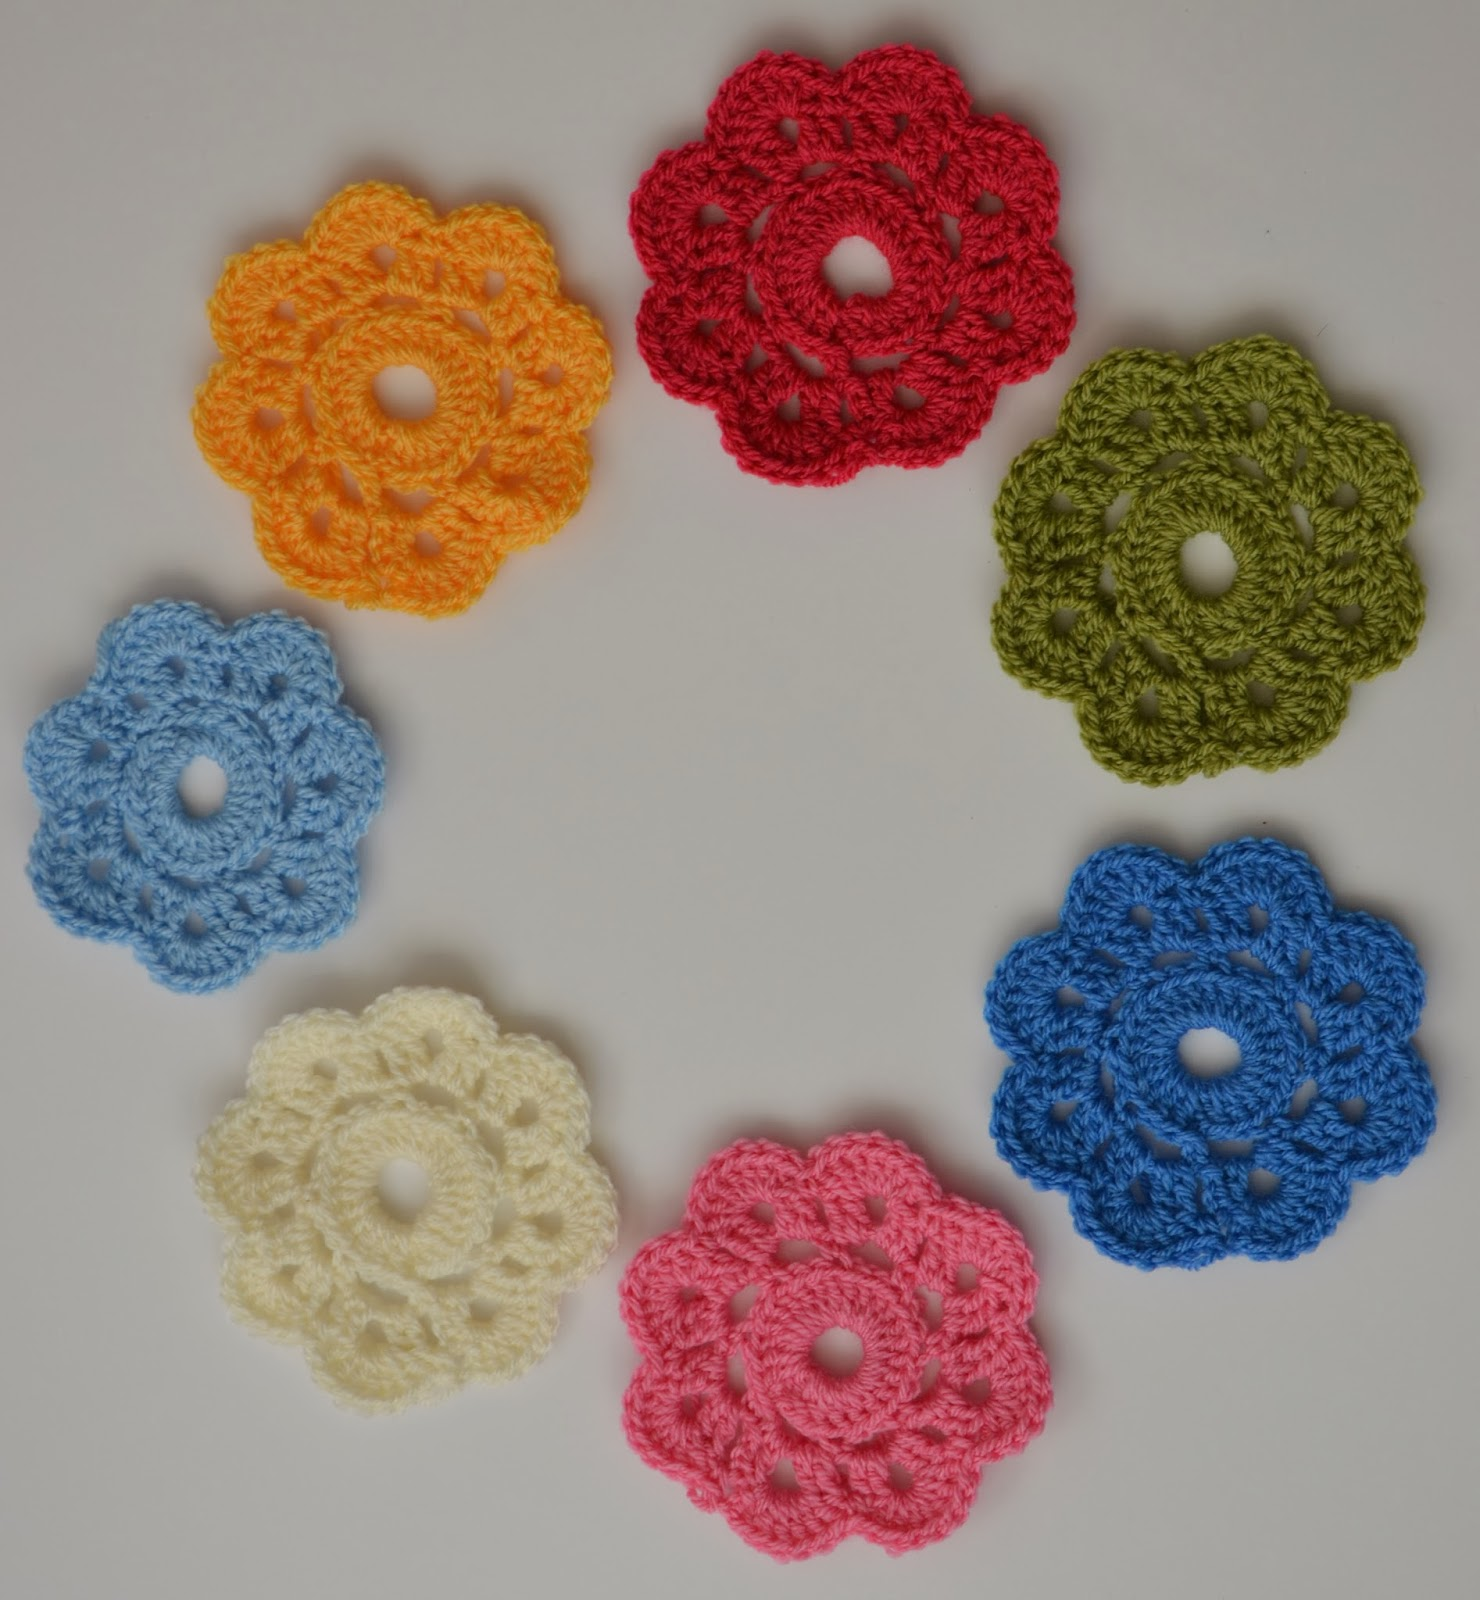 Tadpegs maybelle flowers a fun flower pattern i also wanted to find something to make in those spare 10 minutes i have scattered over the day the kind when its not long enough to get out the sewing bankloansurffo Images